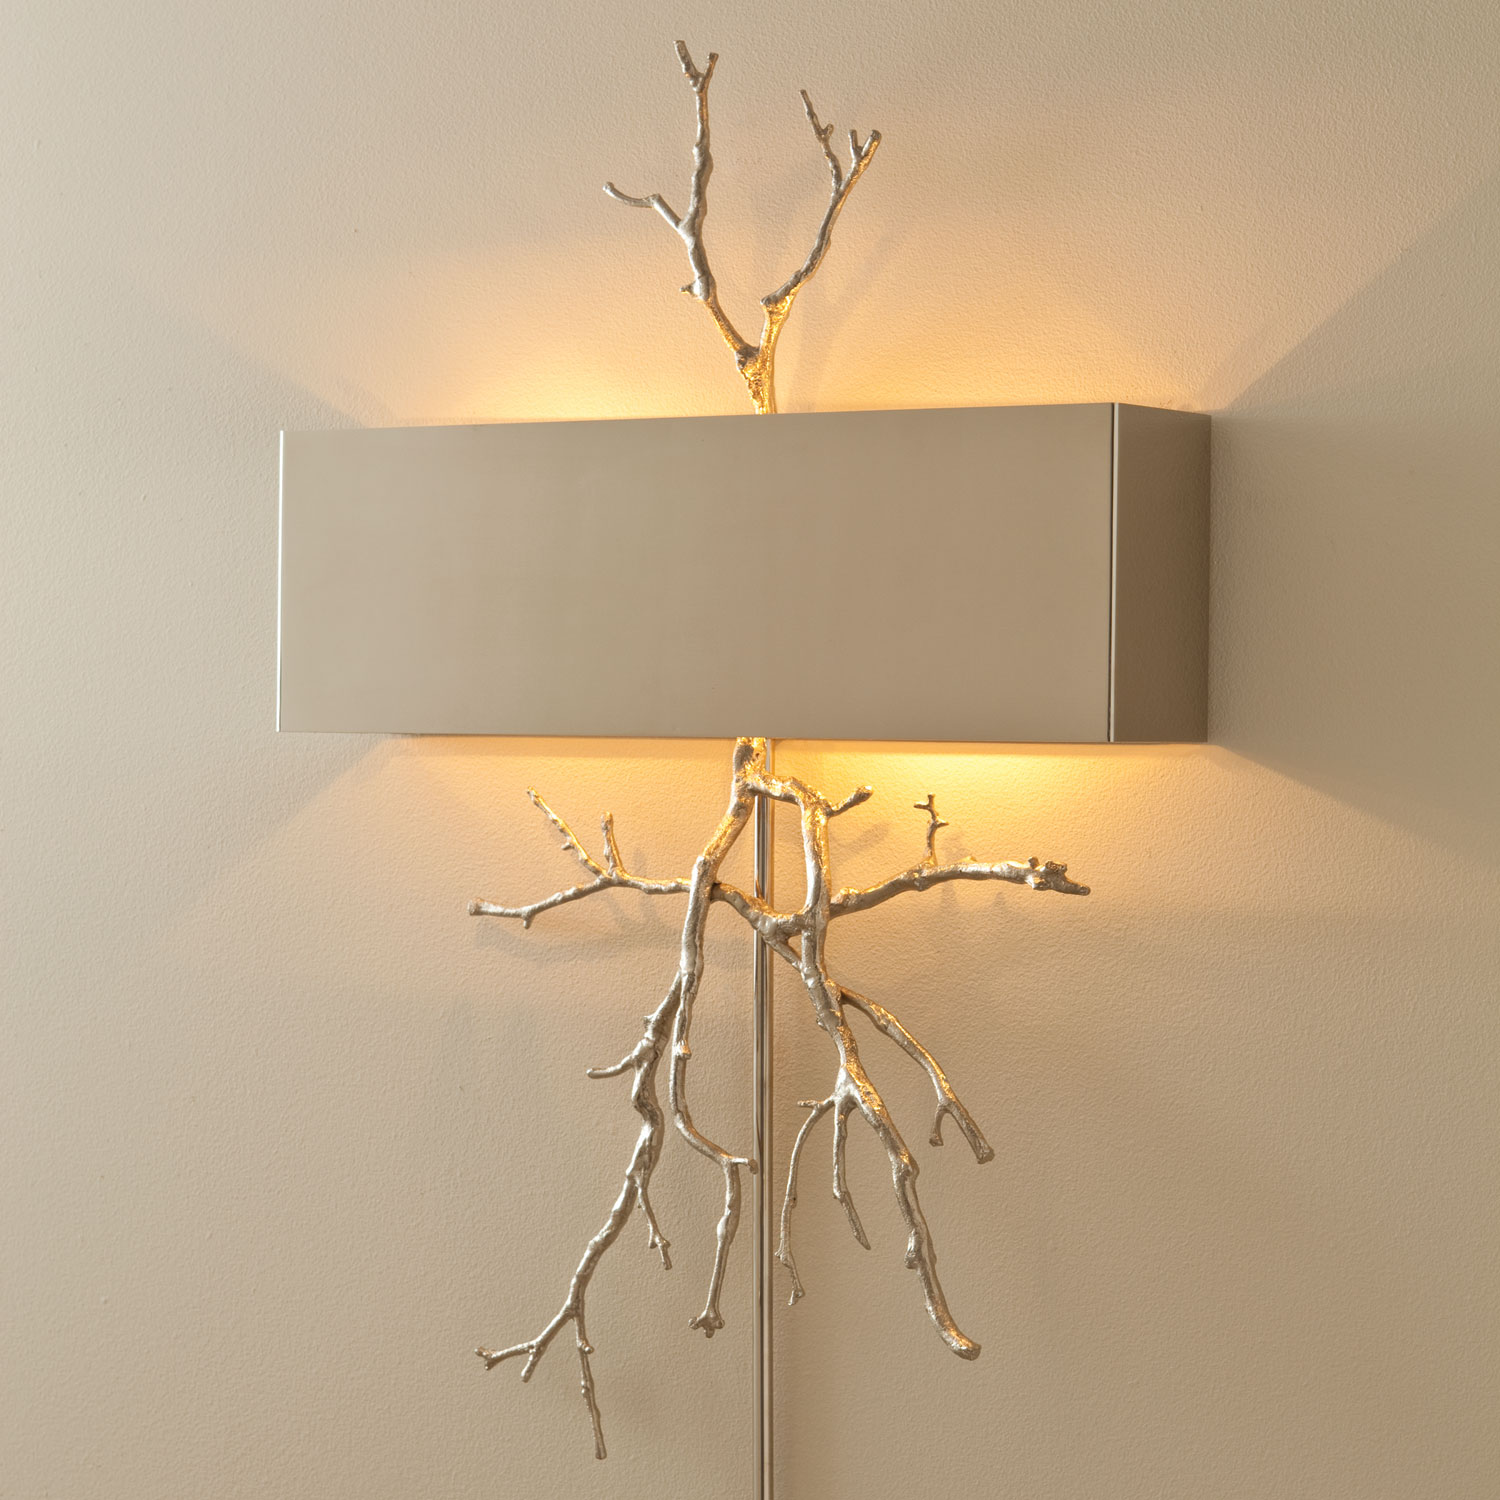 Wall lamp for zooming floating NQLRRBF